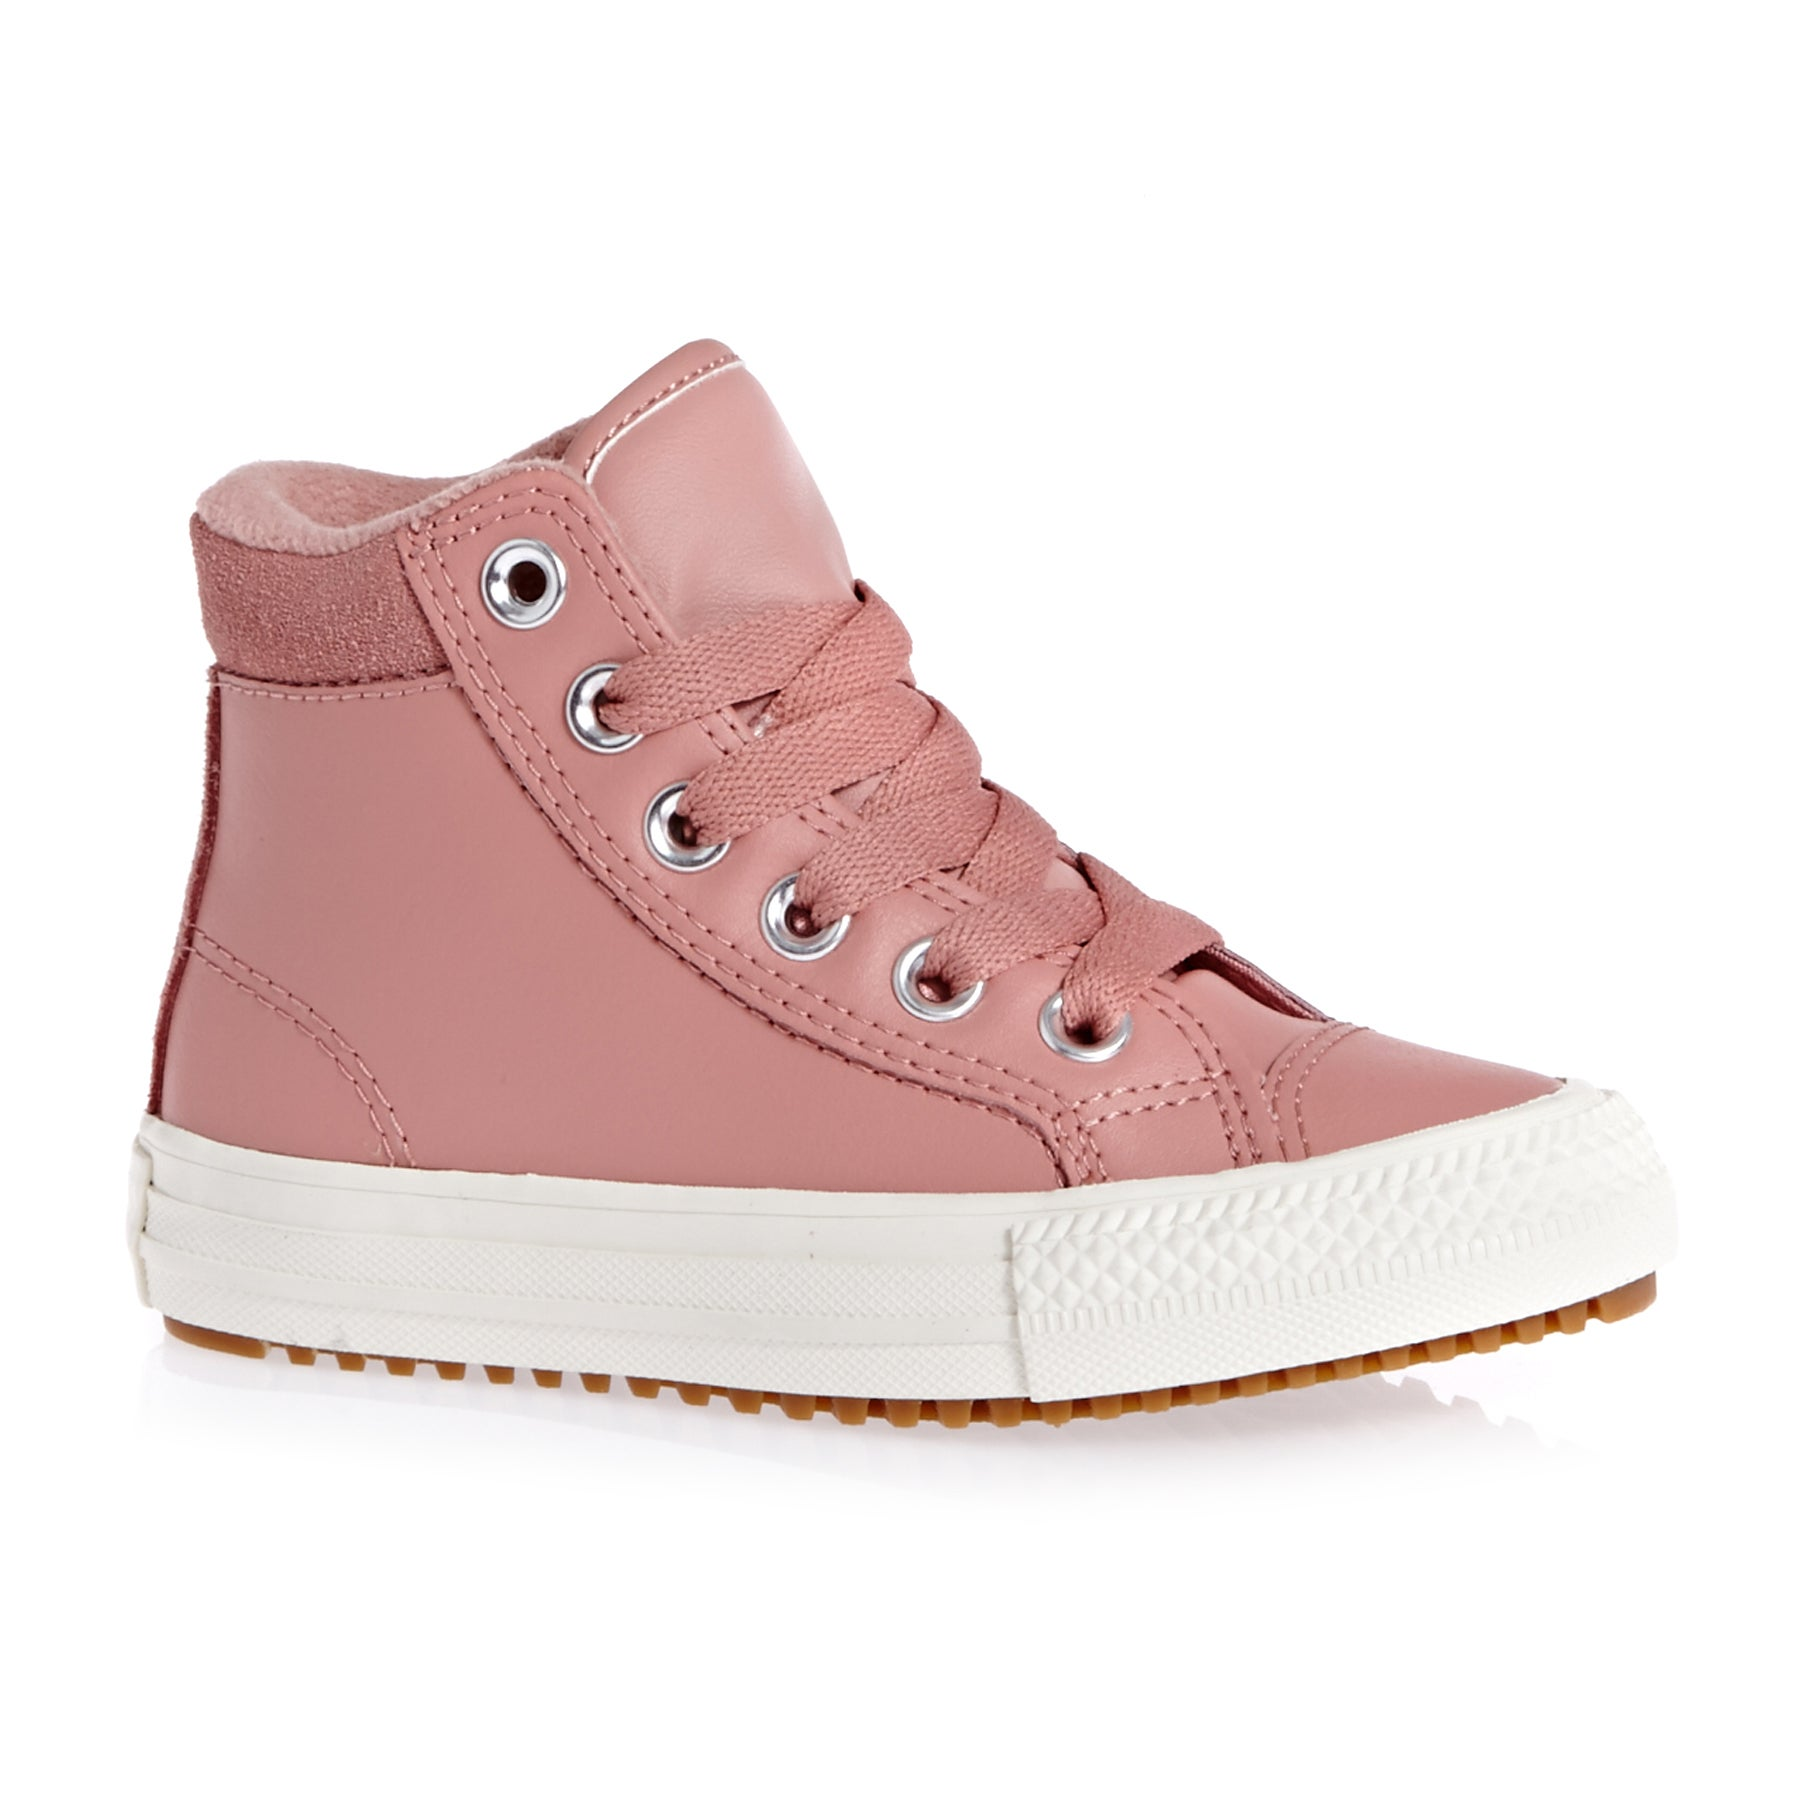 Converse Chuck Taylor All Star Pc Boot Hi Kids Shoes - Rust Pink Burnt Caramel